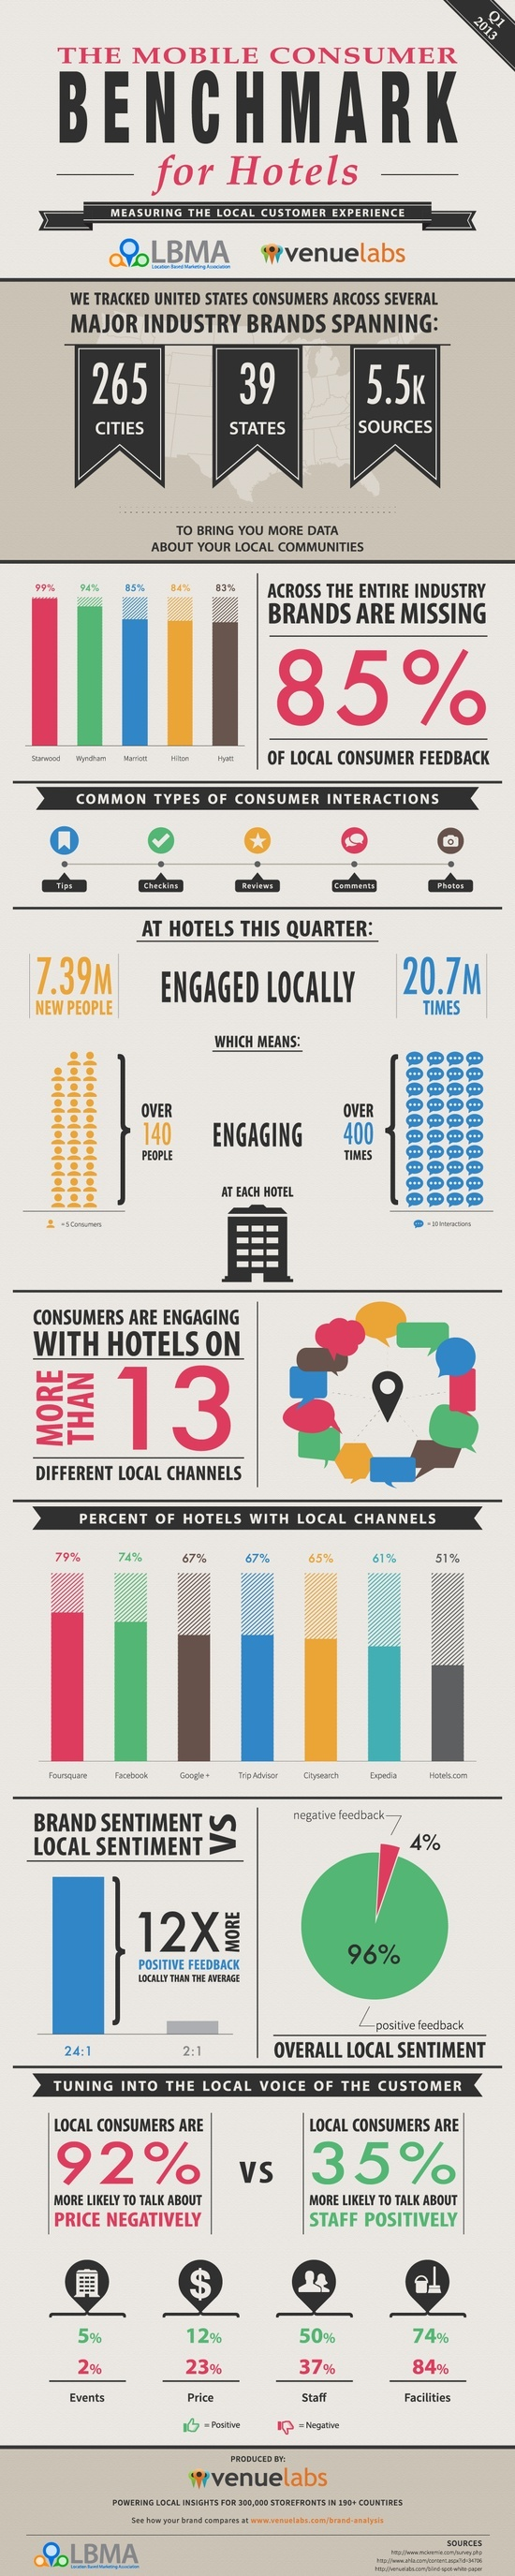 The Mobile Consumer Benchmark for Hotels.